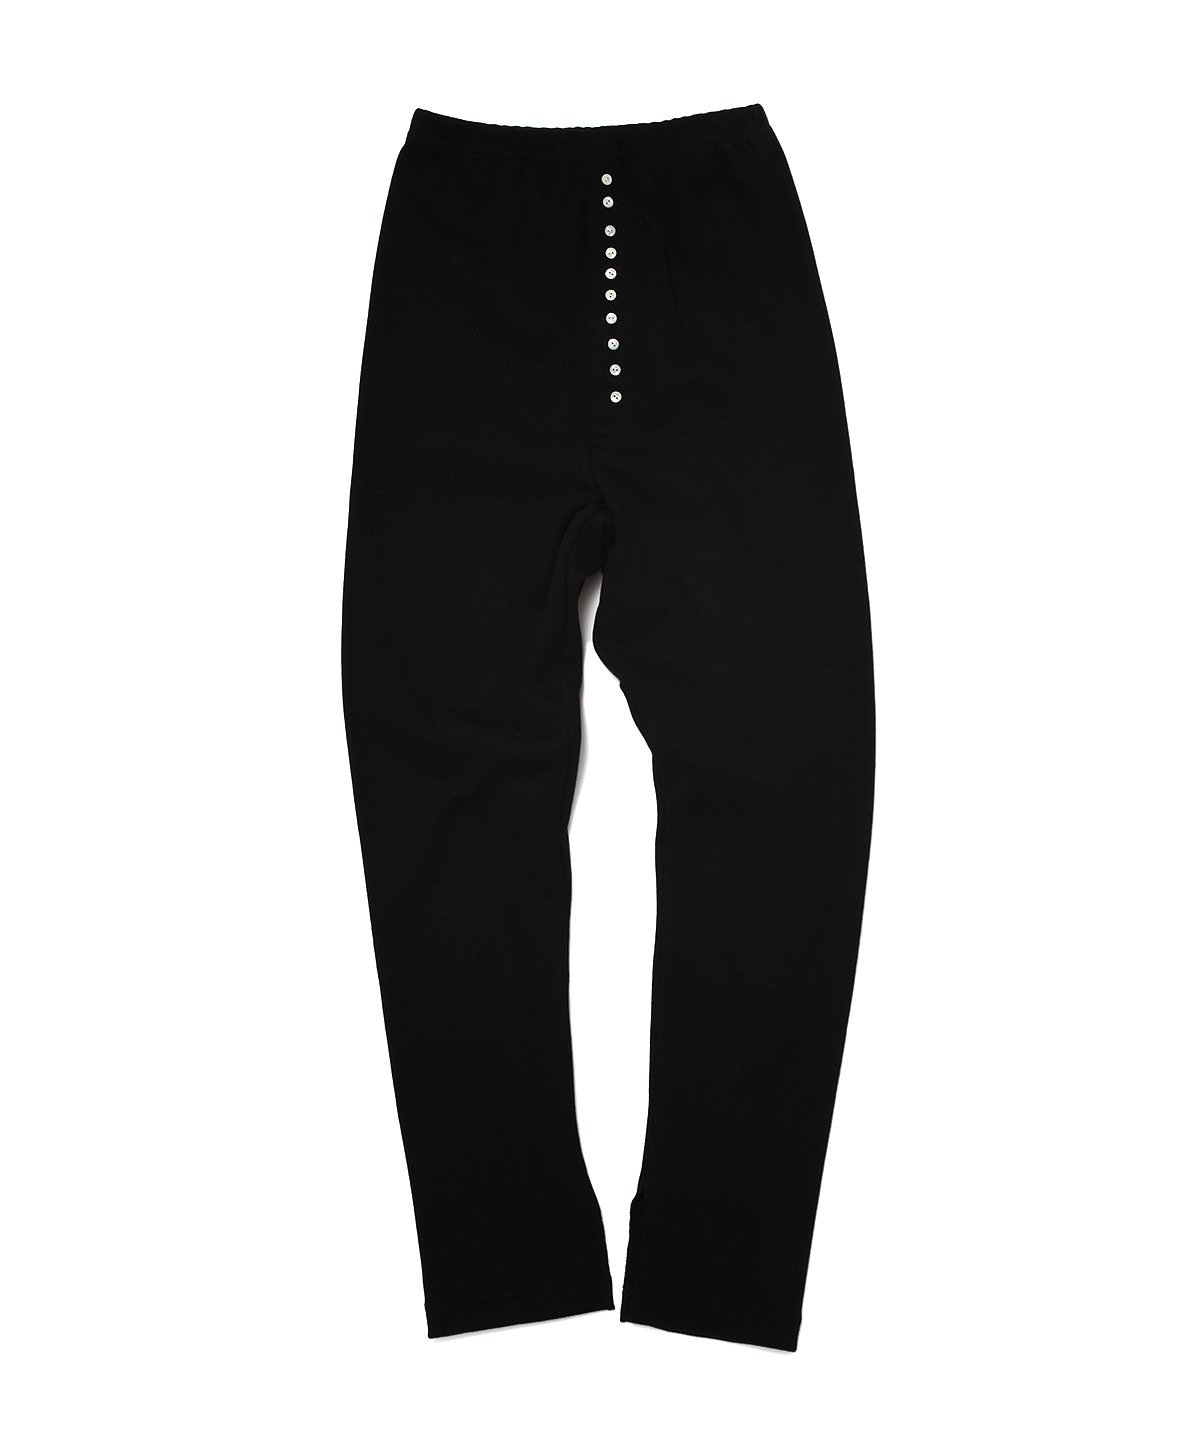 COTTON WOOL RIB LEGGINS